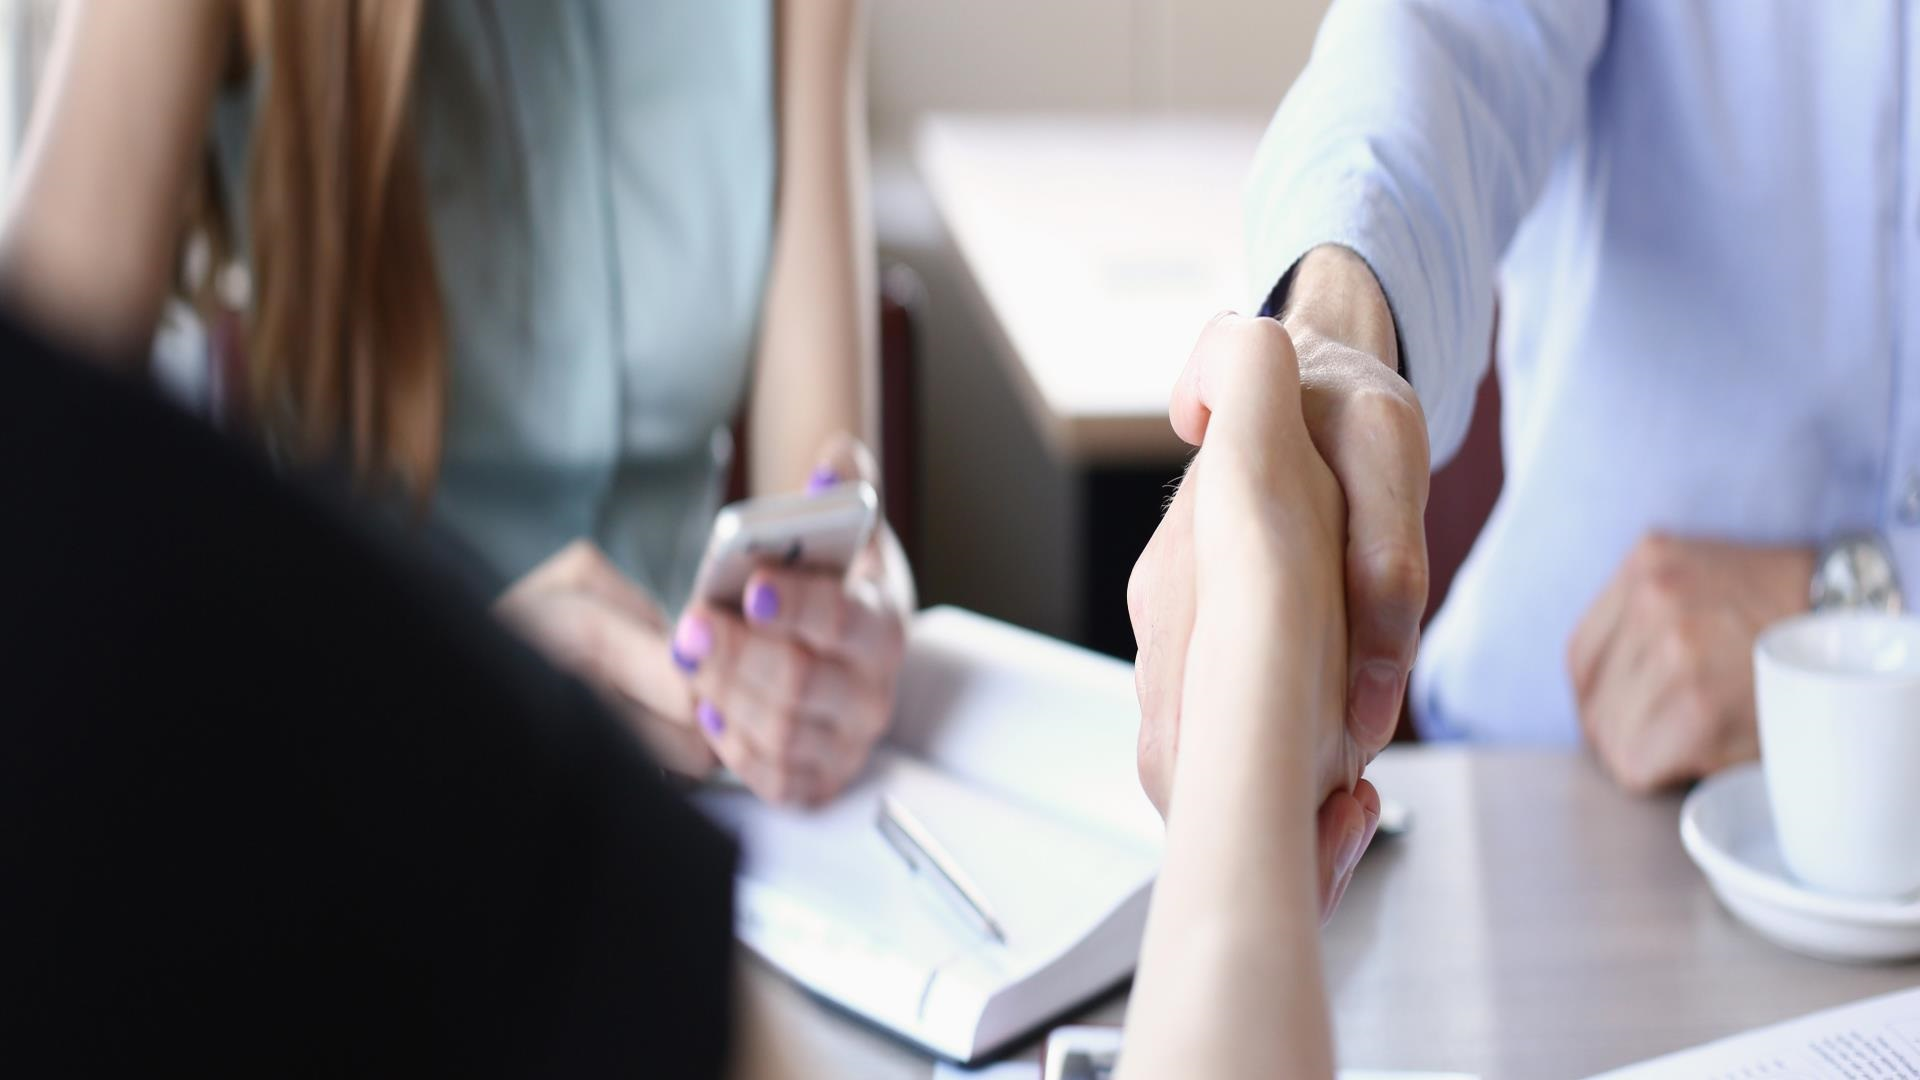 To face the possibilities offered by mediation, you must first understand what it consists of.